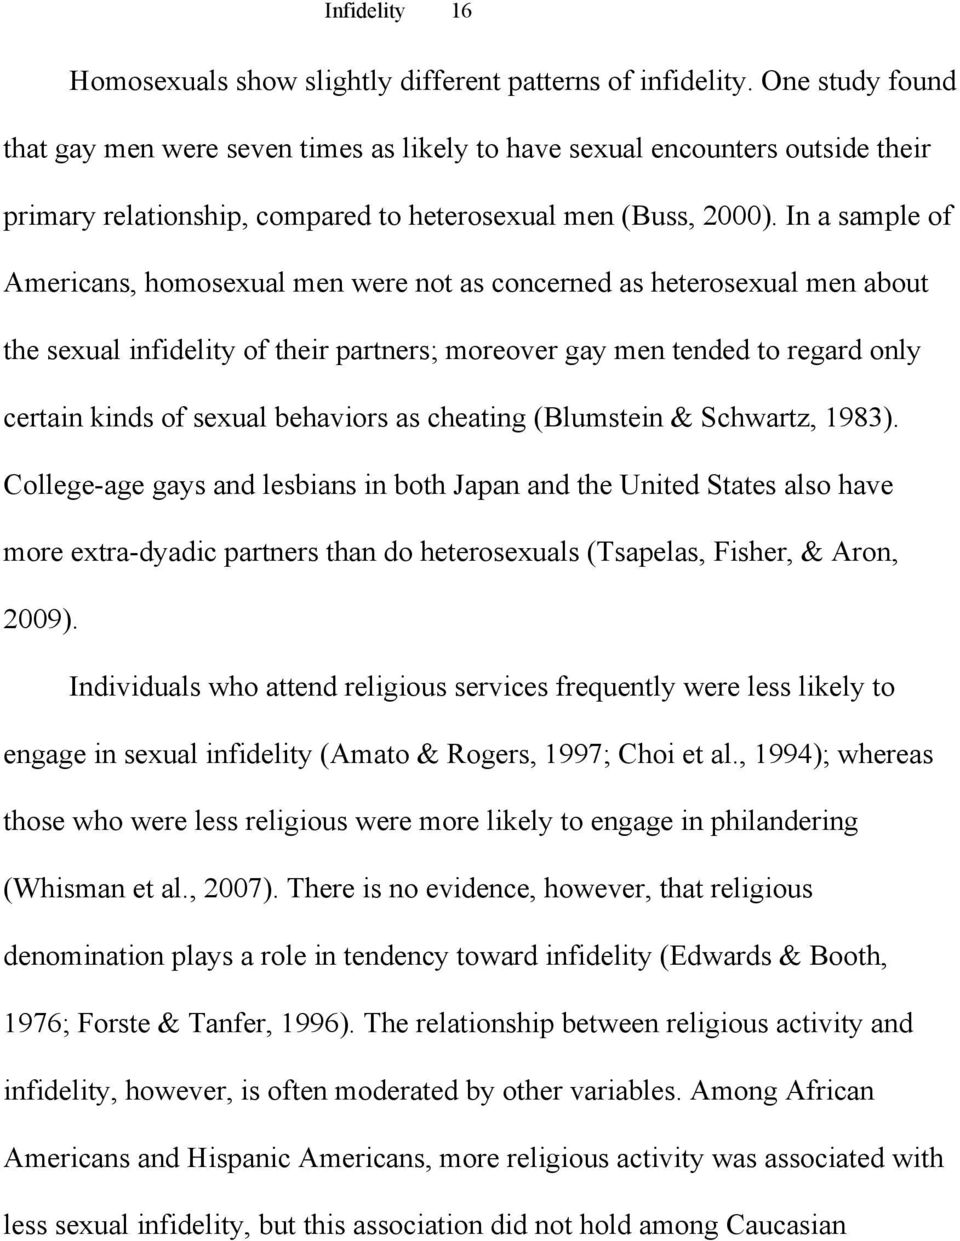 In a sample of Americans, homosexual men were not as concerned as heterosexual men about the sexual infidelity of their partners; moreover gay men tended to regard only certain kinds of sexual